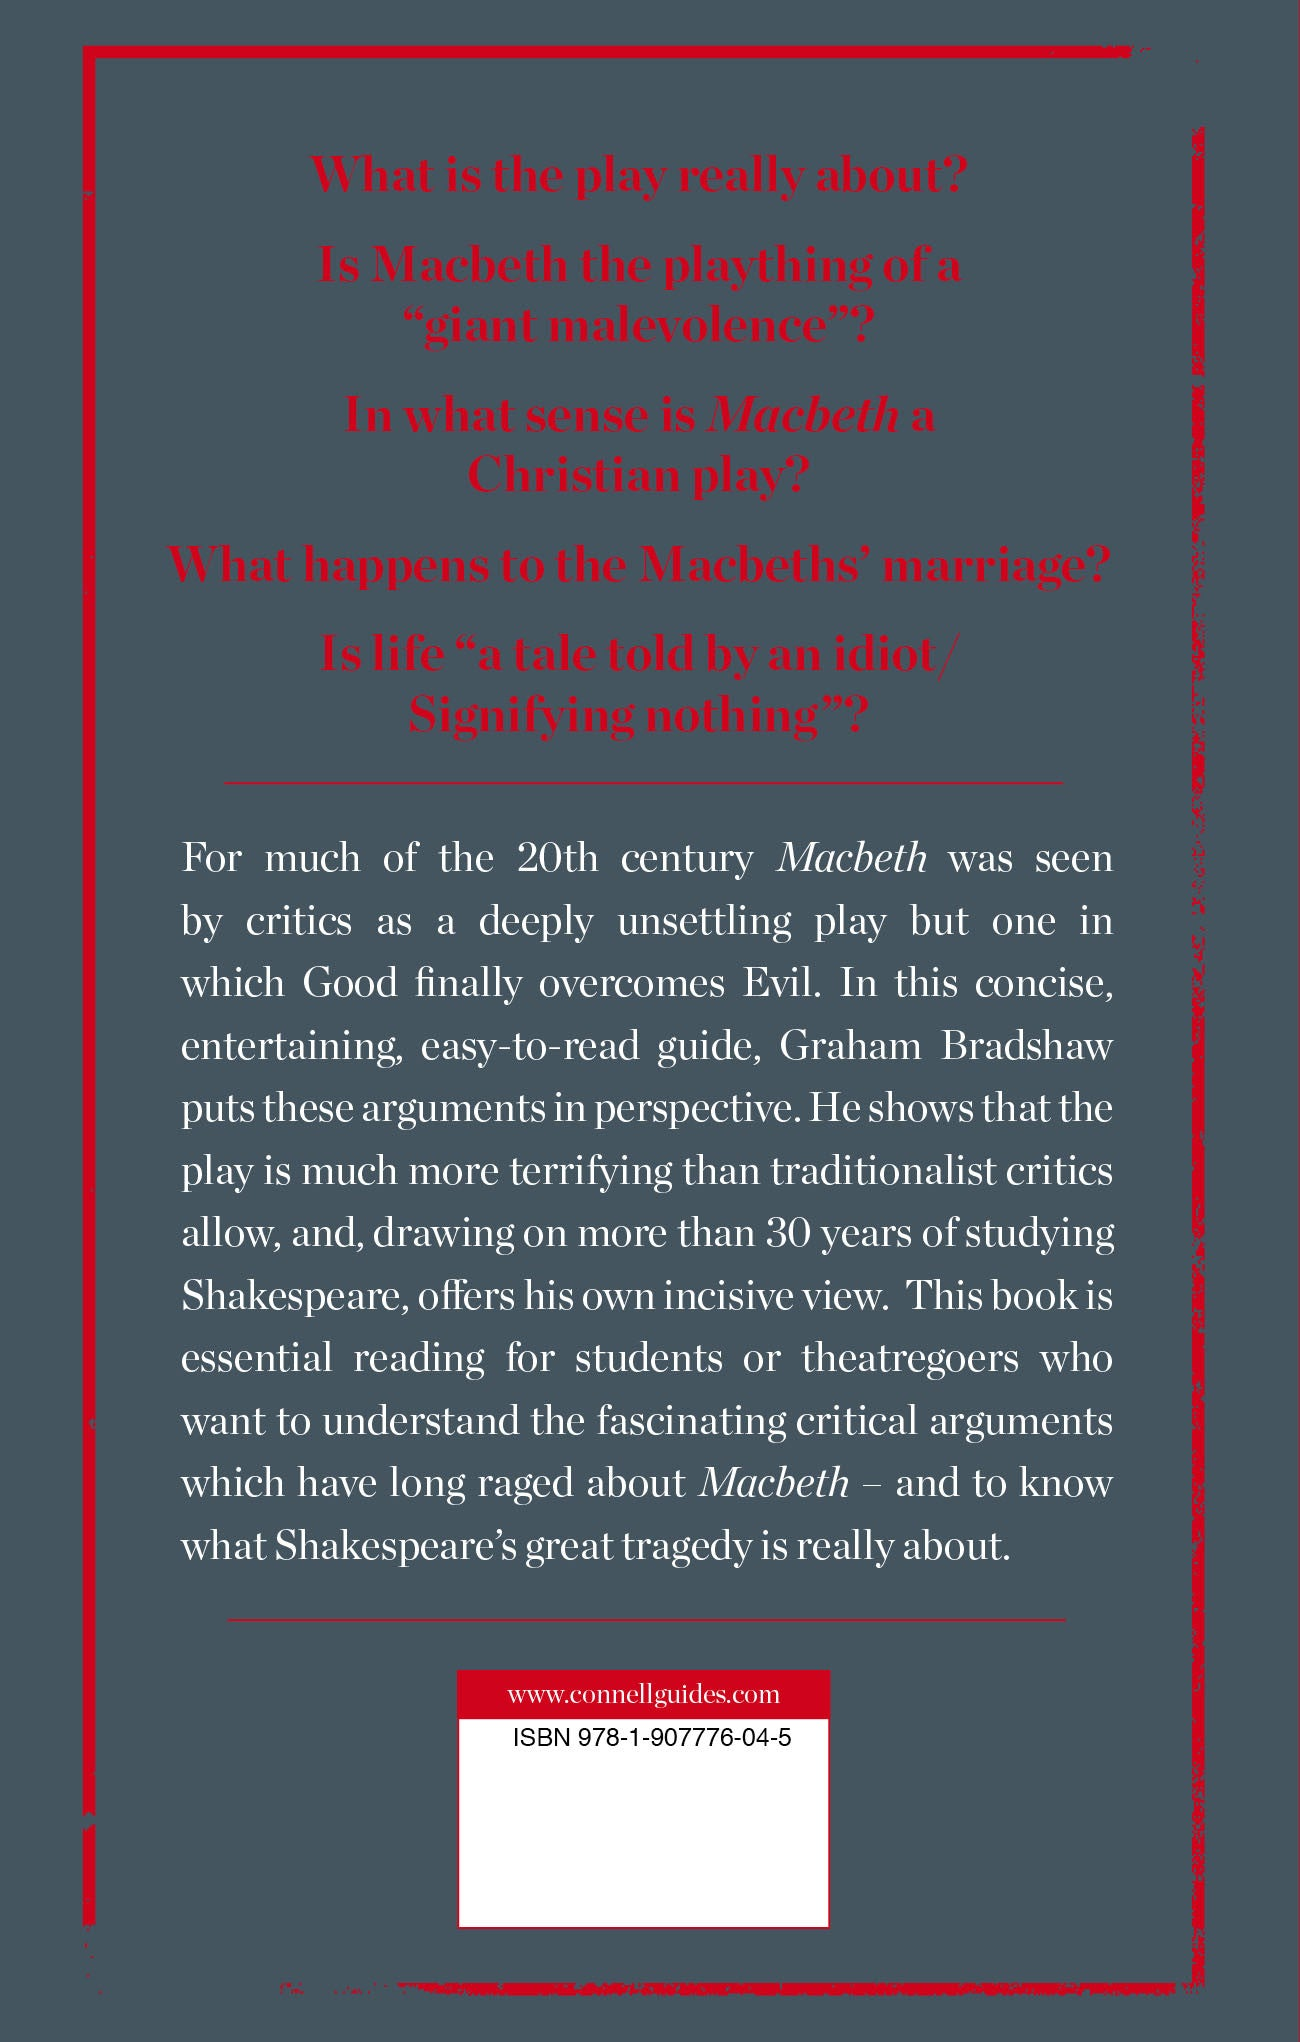 shakespeare s macbeth study guide connell guides shakespeare s macbeth study guide